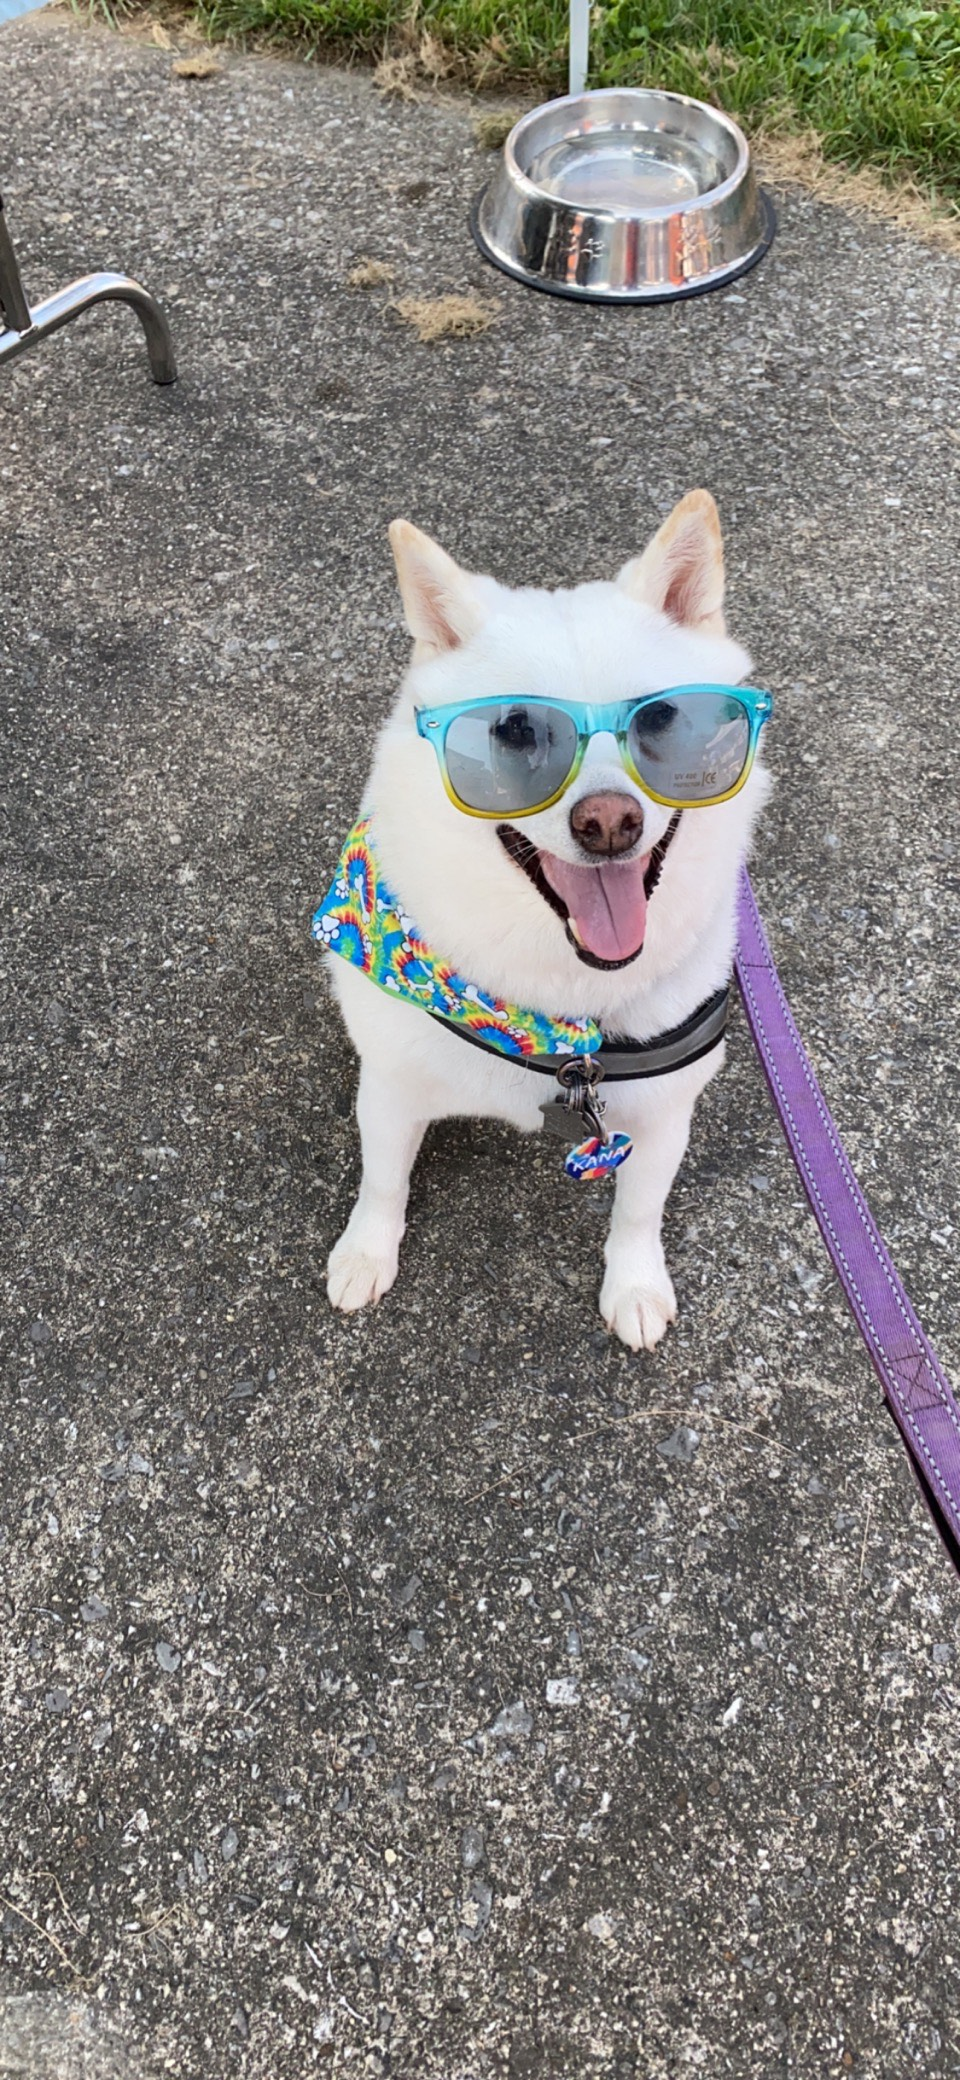 Woofstock 2021 was AWESOME! This Brand Ambassador was petting ALL the dogs, passing out safety stickers, and signing attendees up for a chance to win a free grooming for Aussie Pet Mobile Cuyahoga Valley. Great job Rescue Village for putting together a pawsitively perfect event!